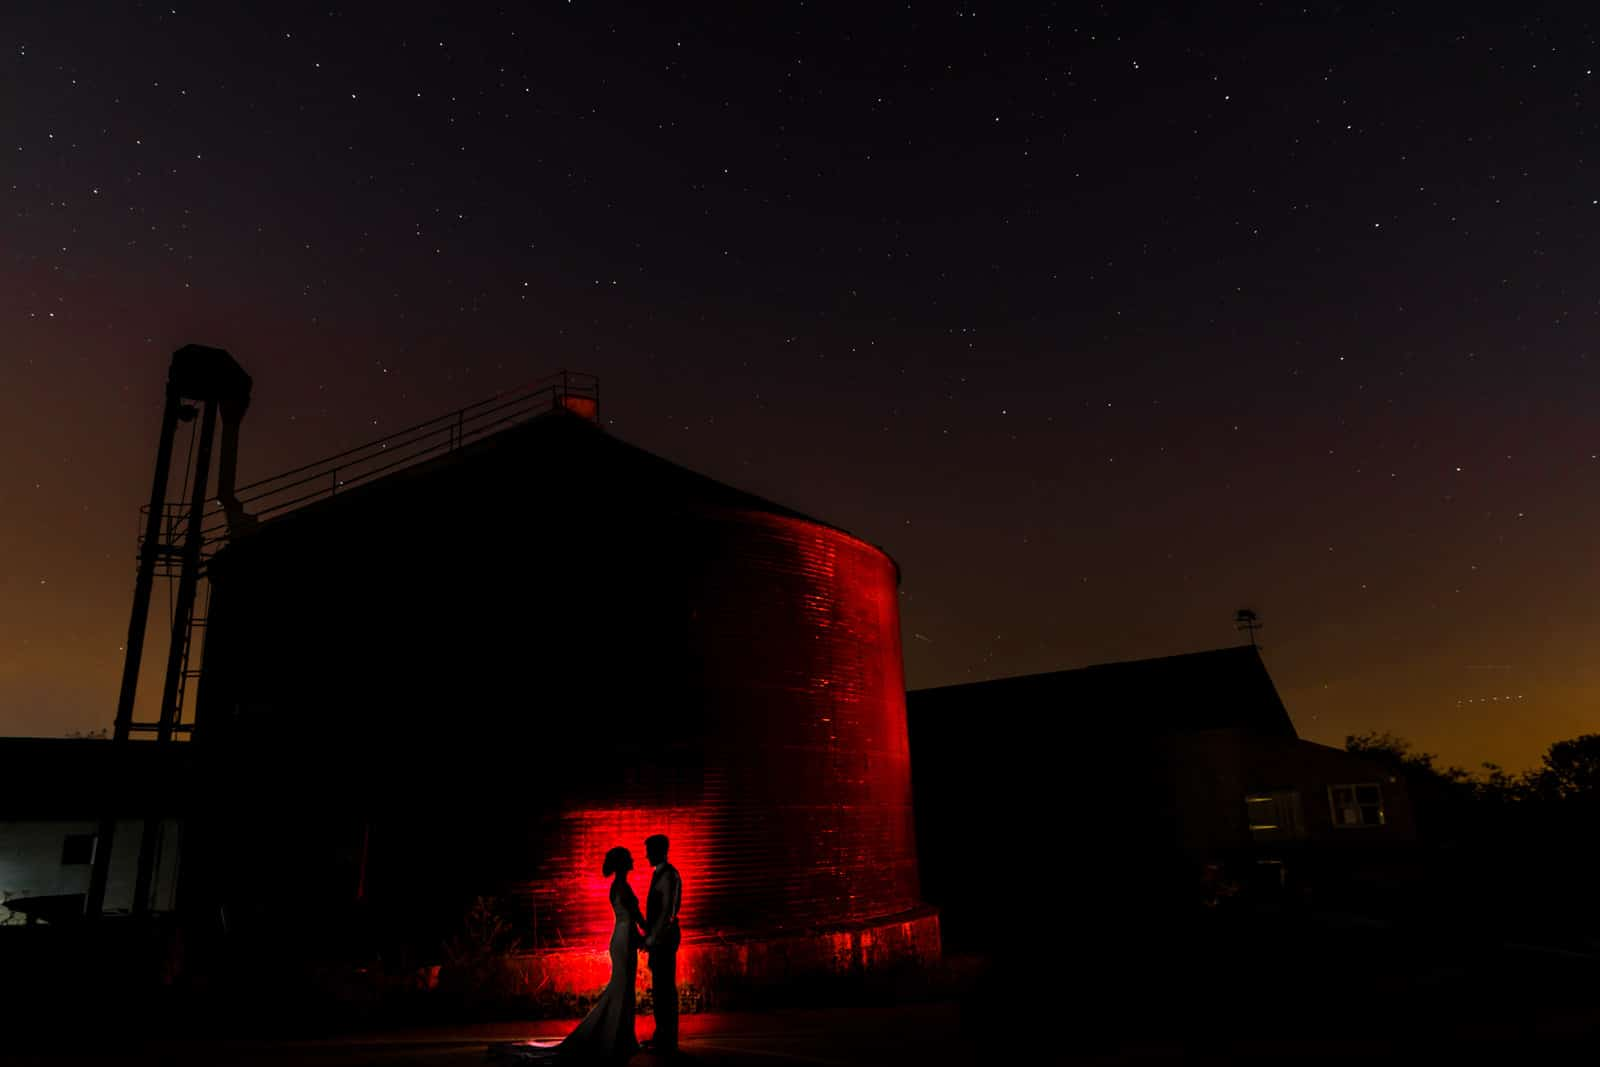 Stunning wedding photo including the stars and a farm